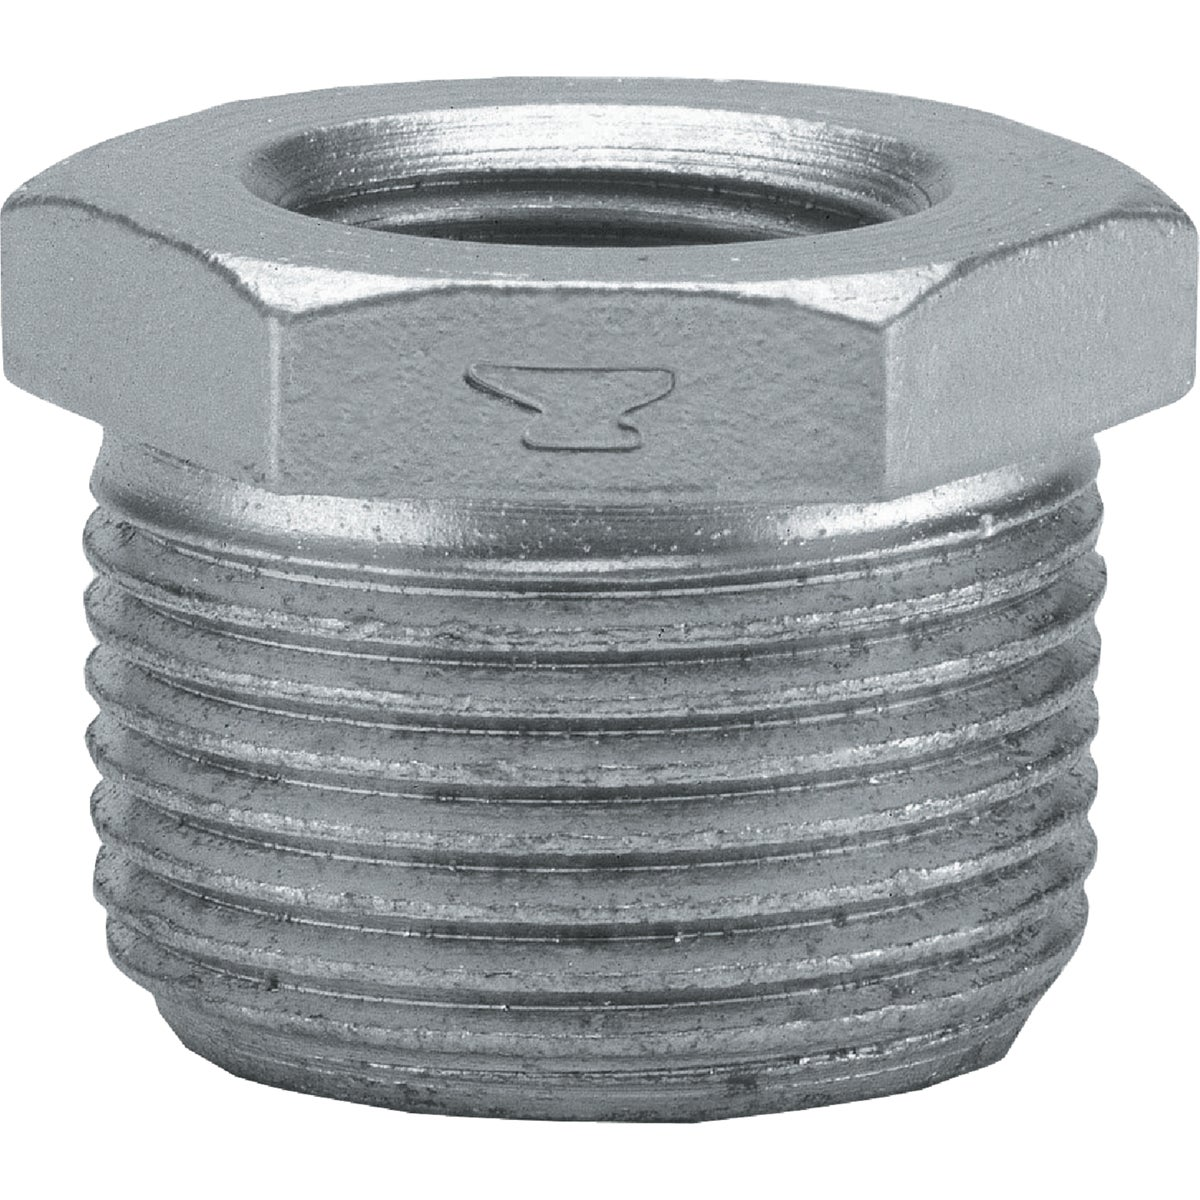 1/2X1/8 GALV BUSHING - 8700130456 by Anvil International